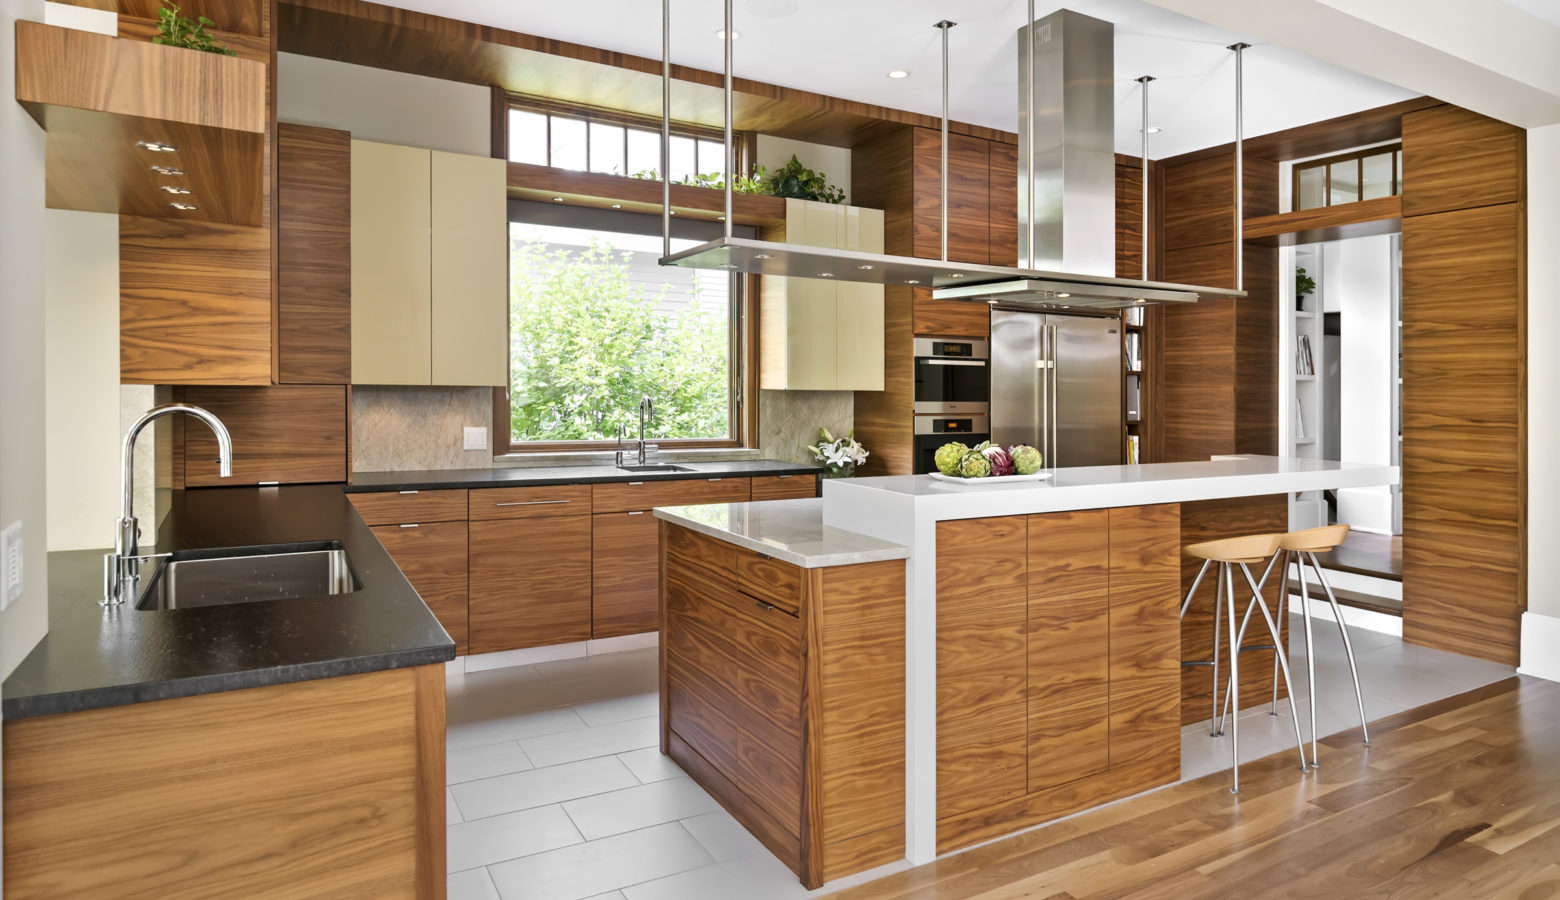 Kitchen Islands Design Ideas For Entertaining